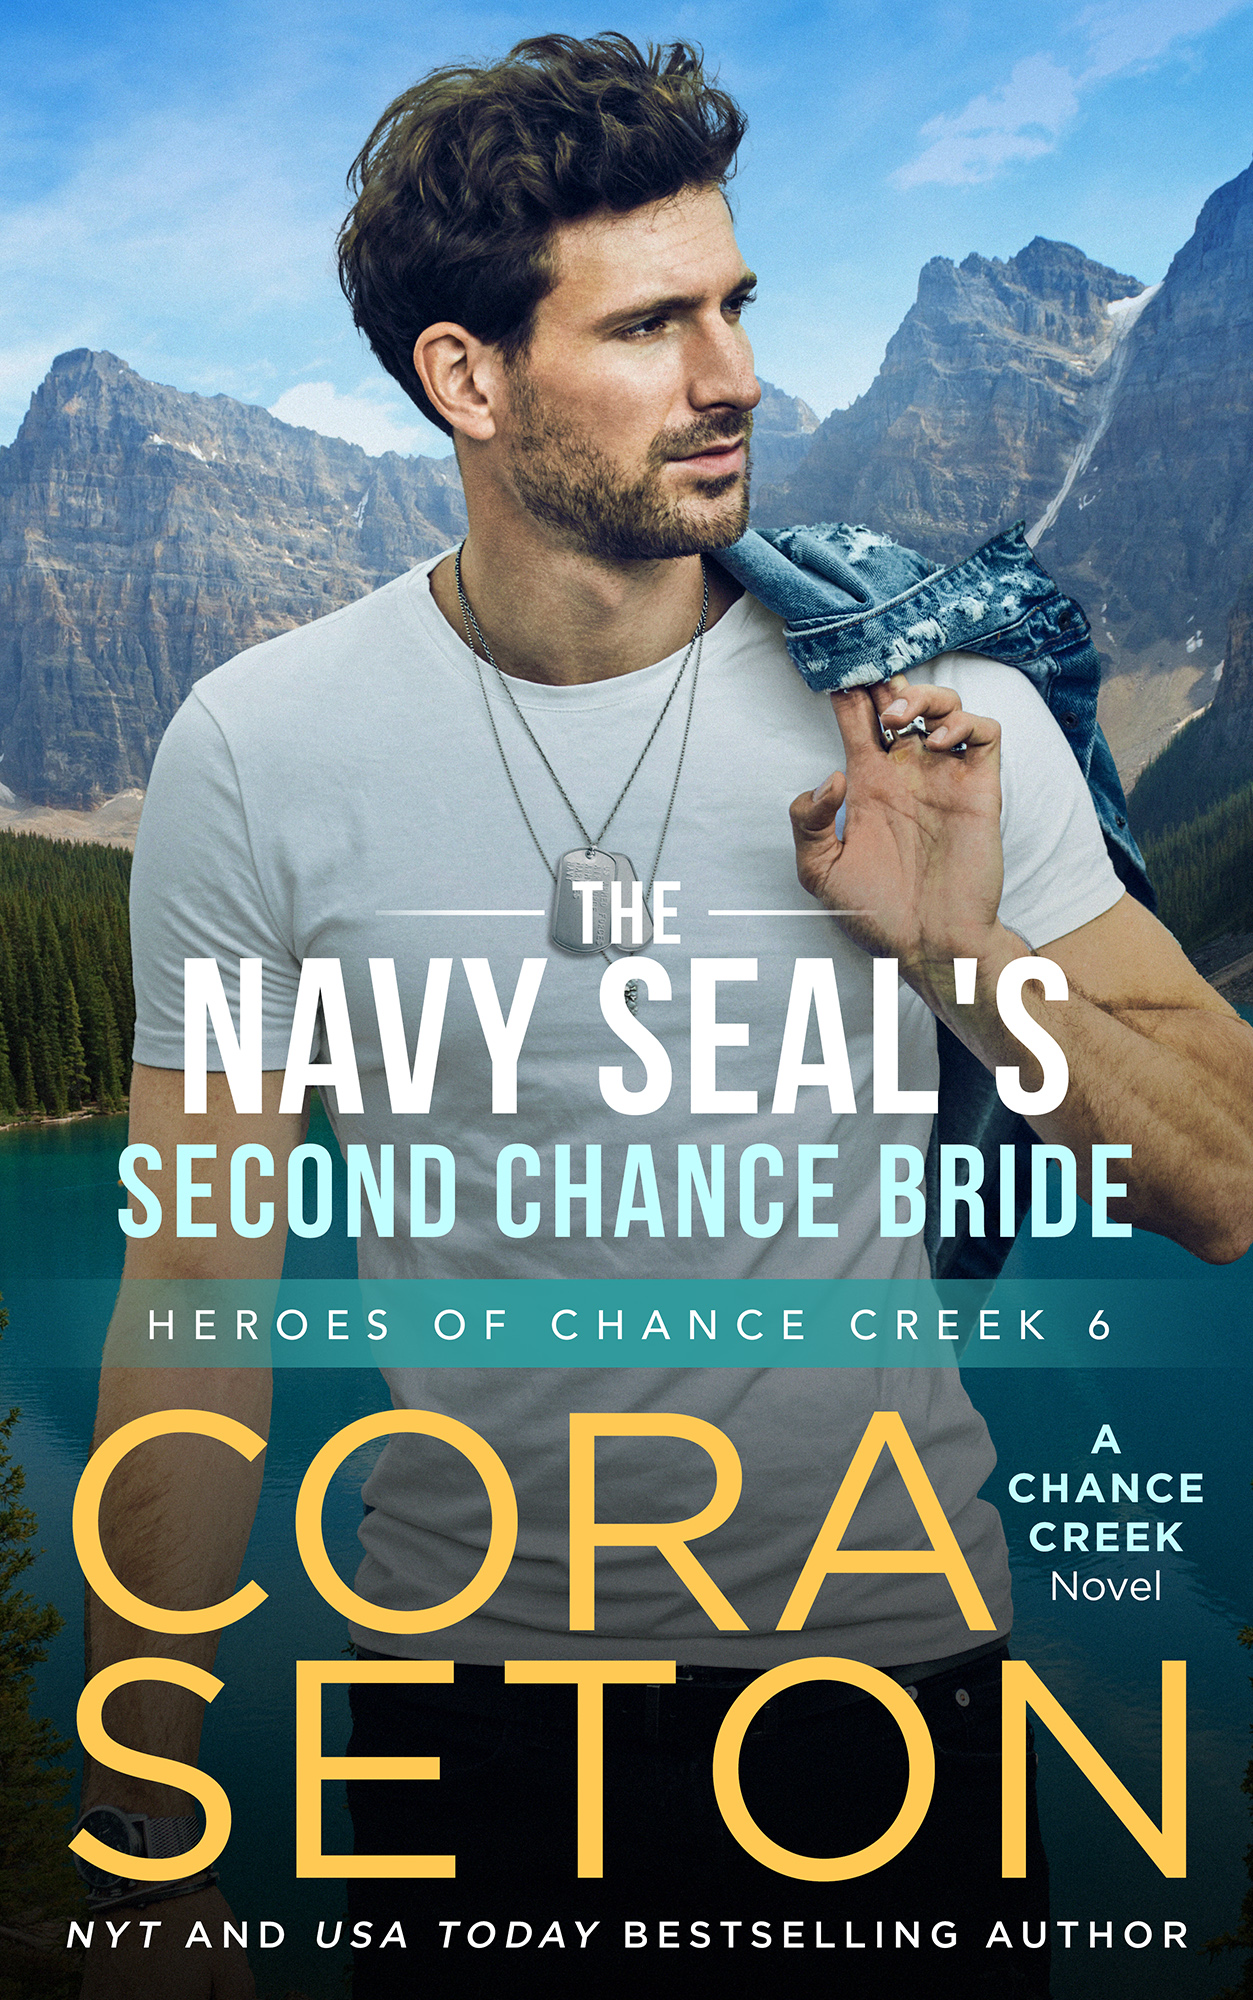 The Navy SEAL's Second Chance Bride (Book 6)